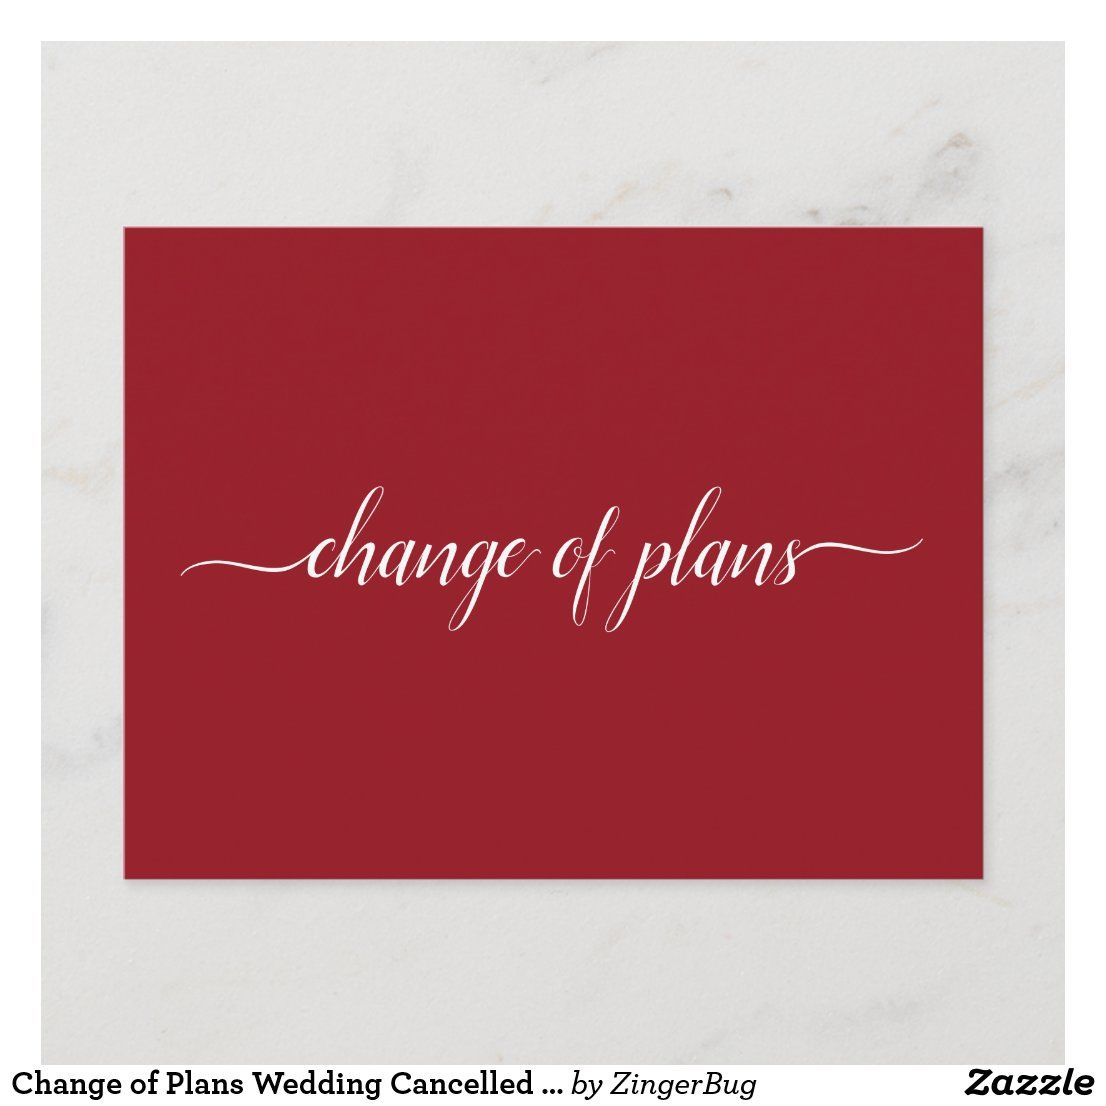 Change of plans wedding cancelled postponed red